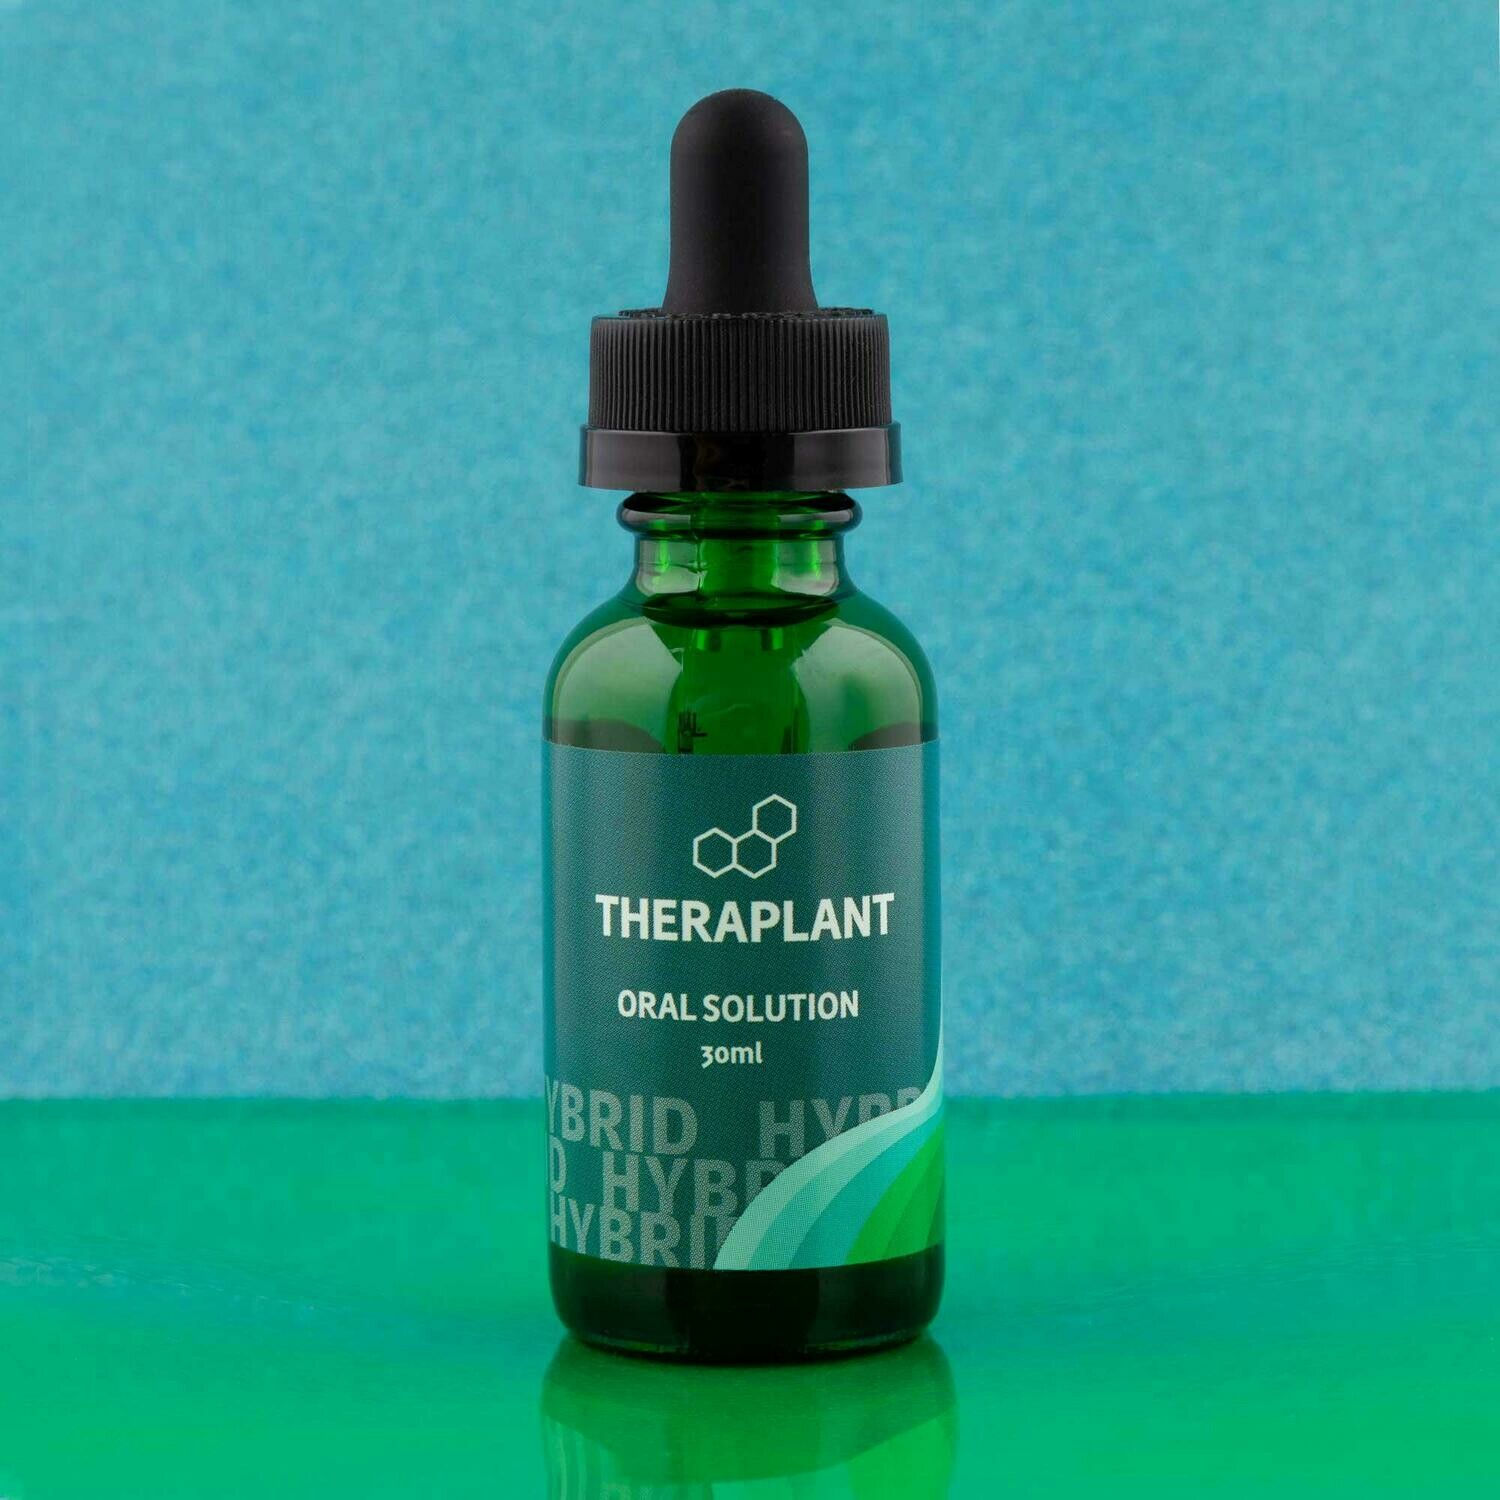 Pagoti T911 11583 - 30mL Oral Solution (Theraplant)